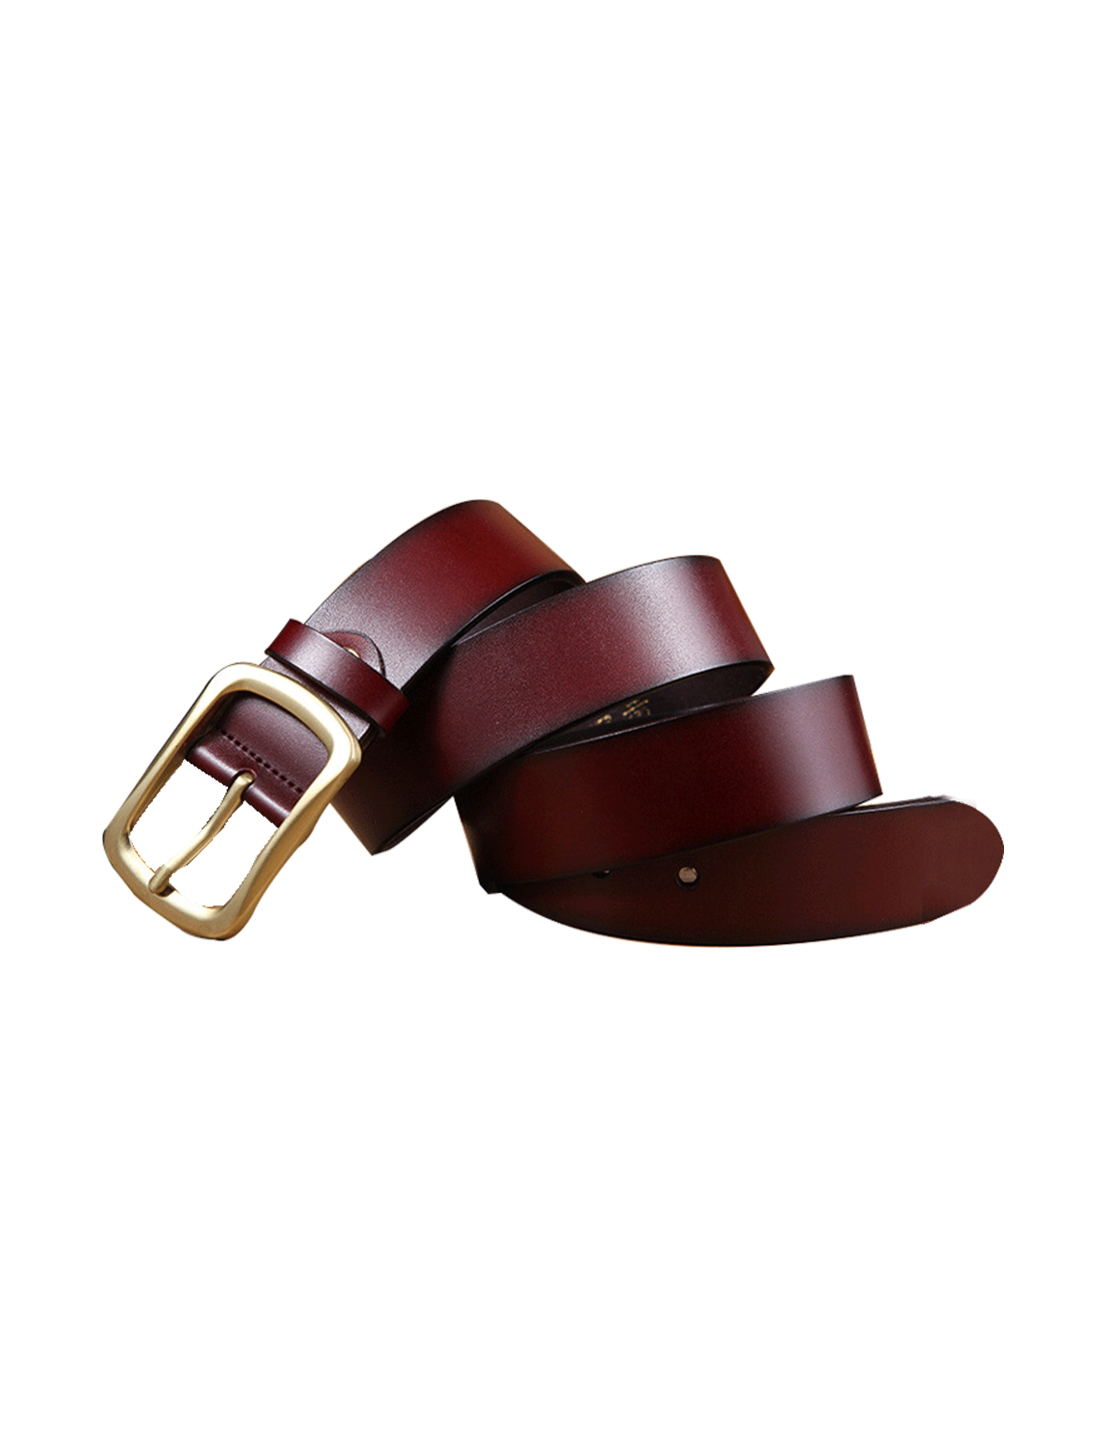 Mens Solid Pin Buckle Dress Leather Belt 38mm Width 1 1/2 Brown 120cm